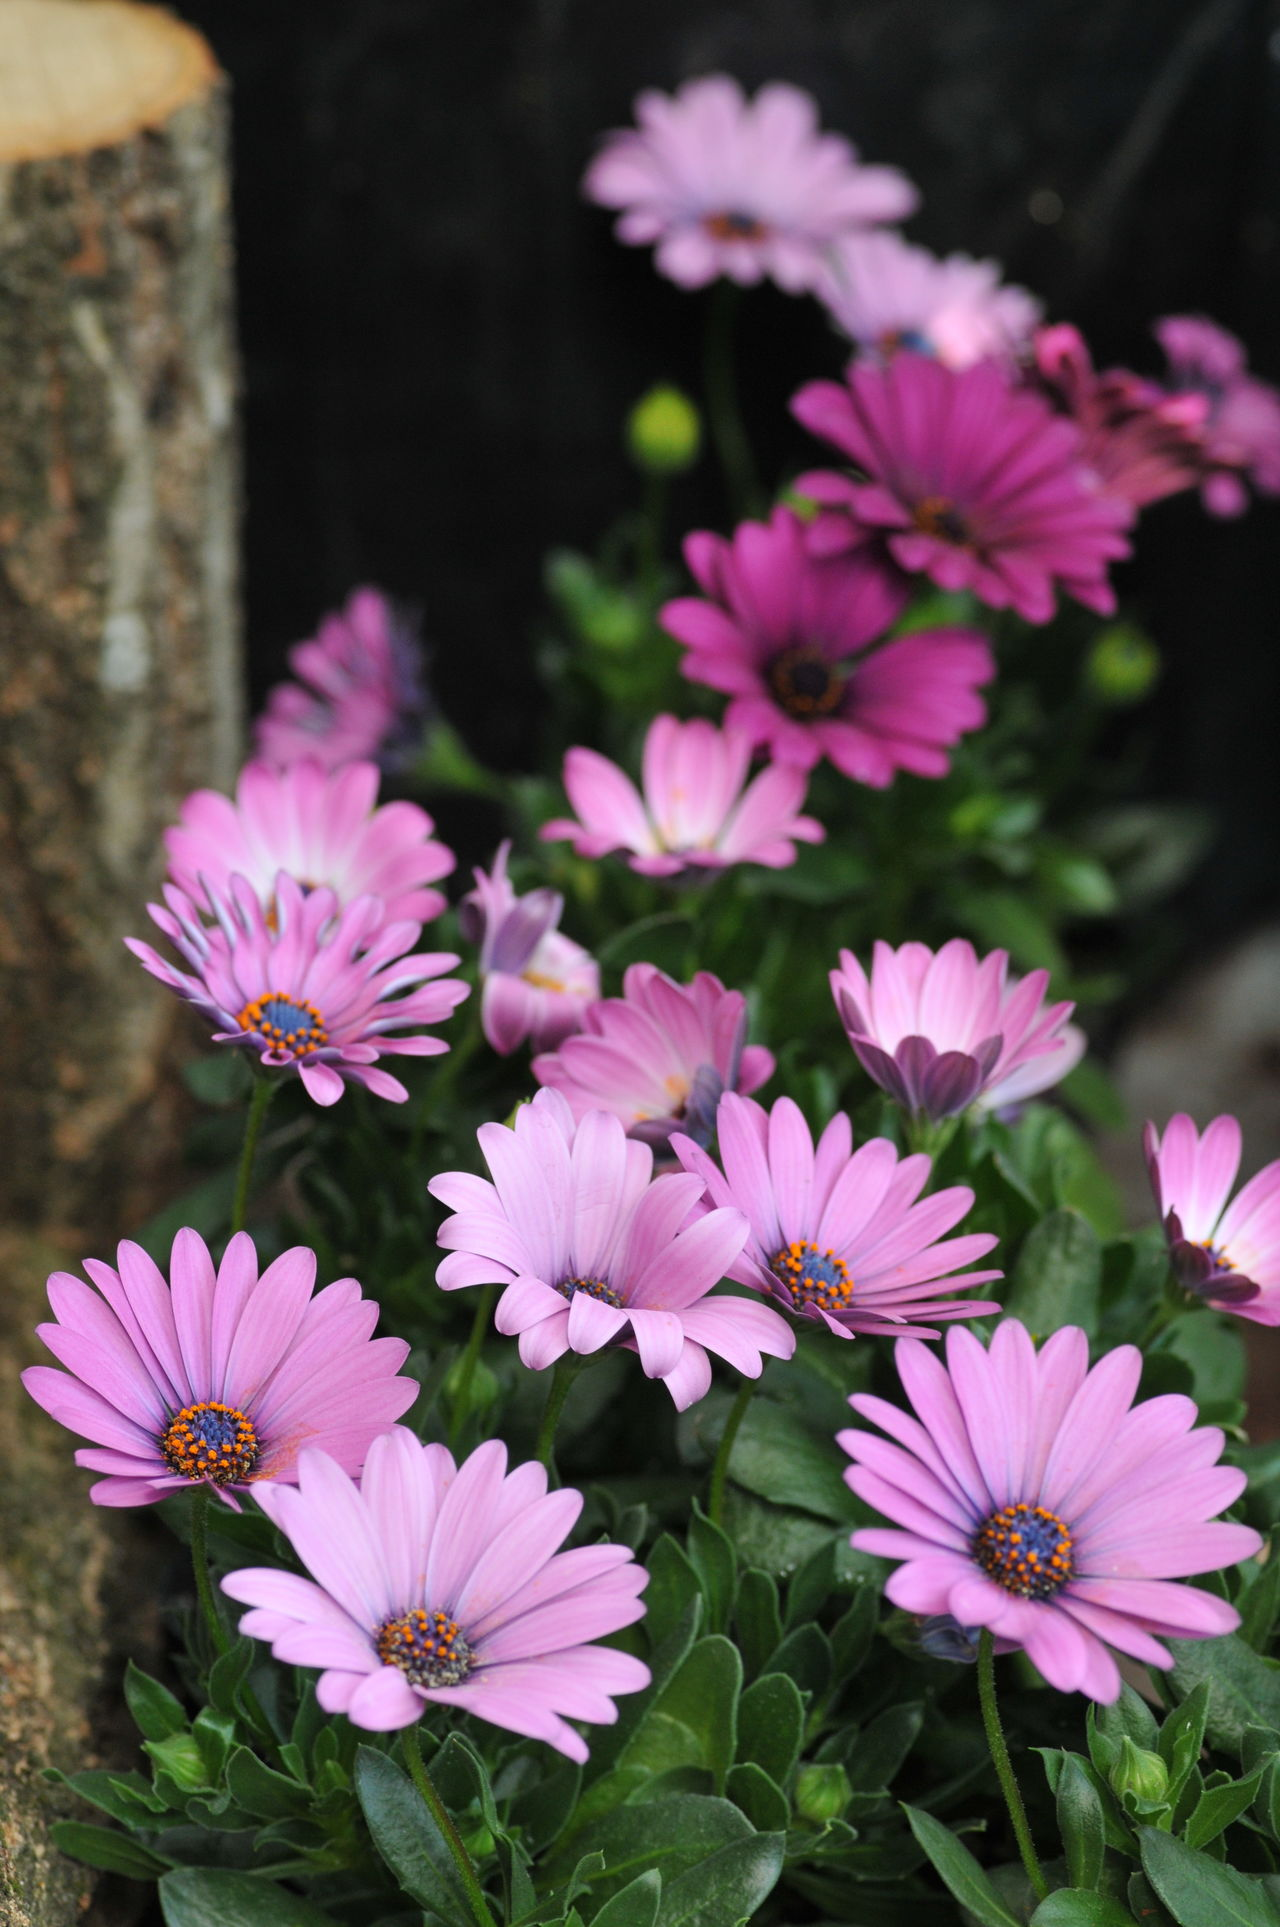 Flower Festival Commemorative Park Beauty In Nature Blooming Flower Flower Head Fragility Freshness No People Osteospermum Plant